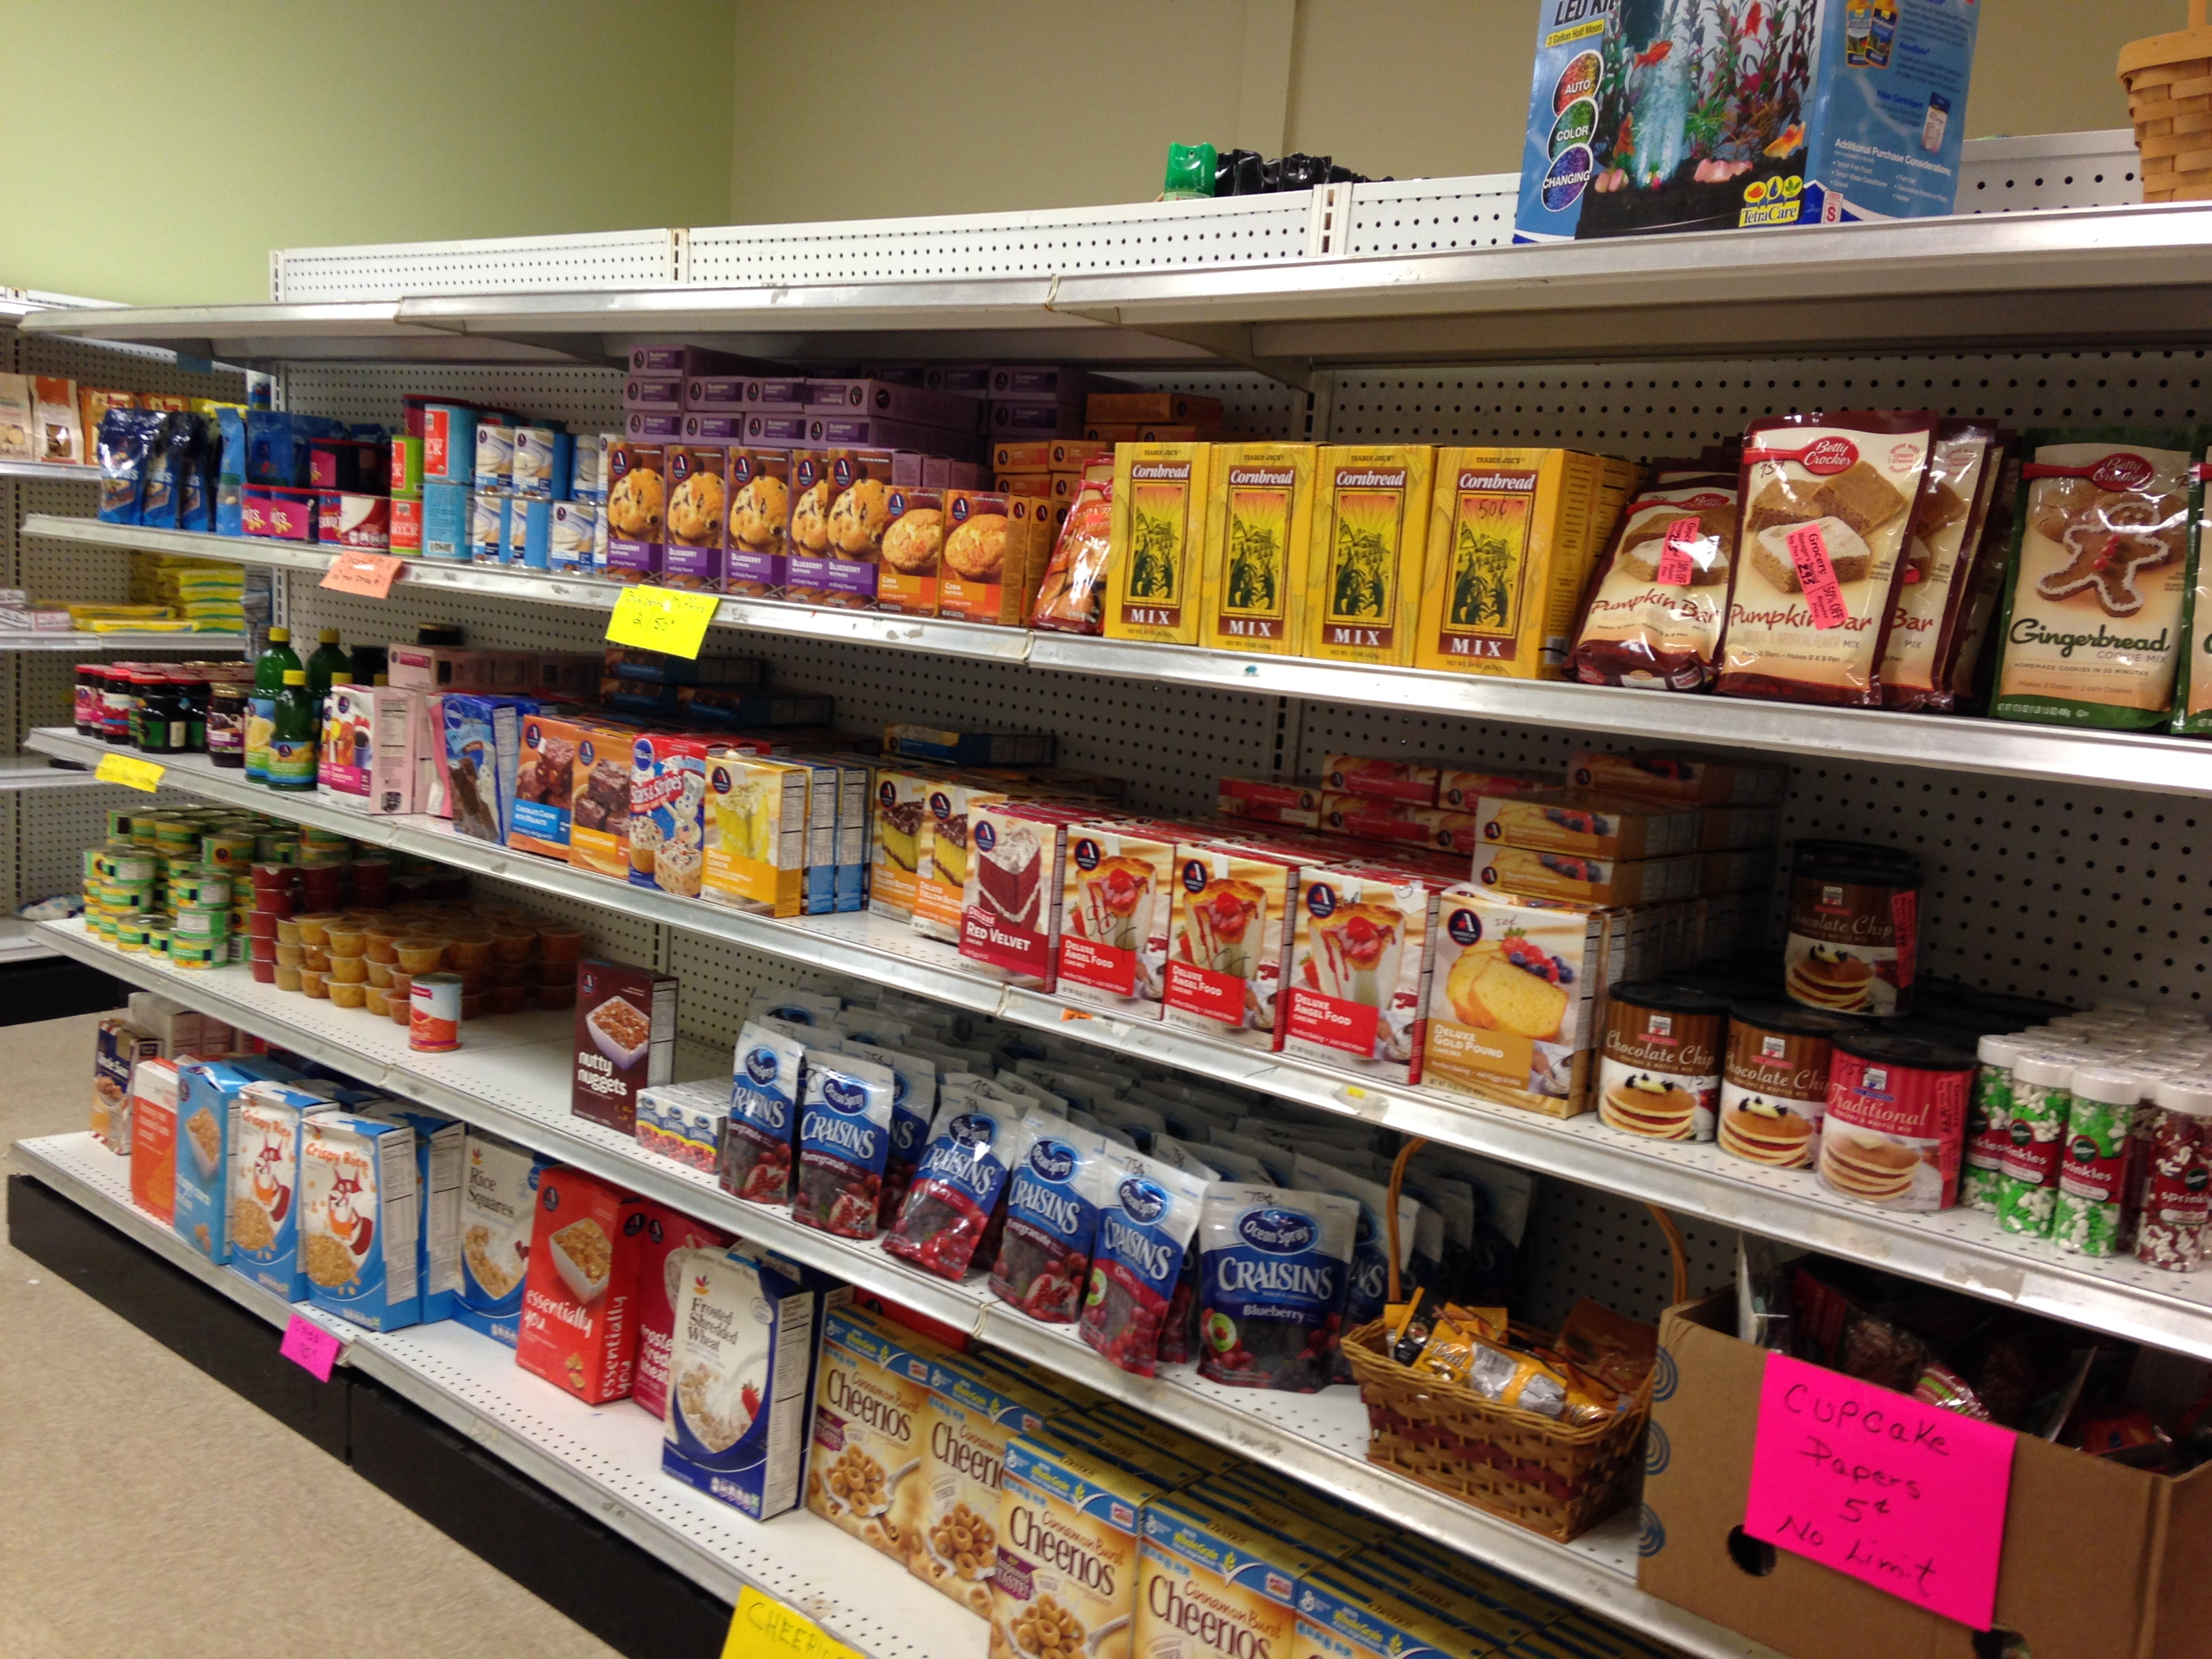 Your donations help us purchase food